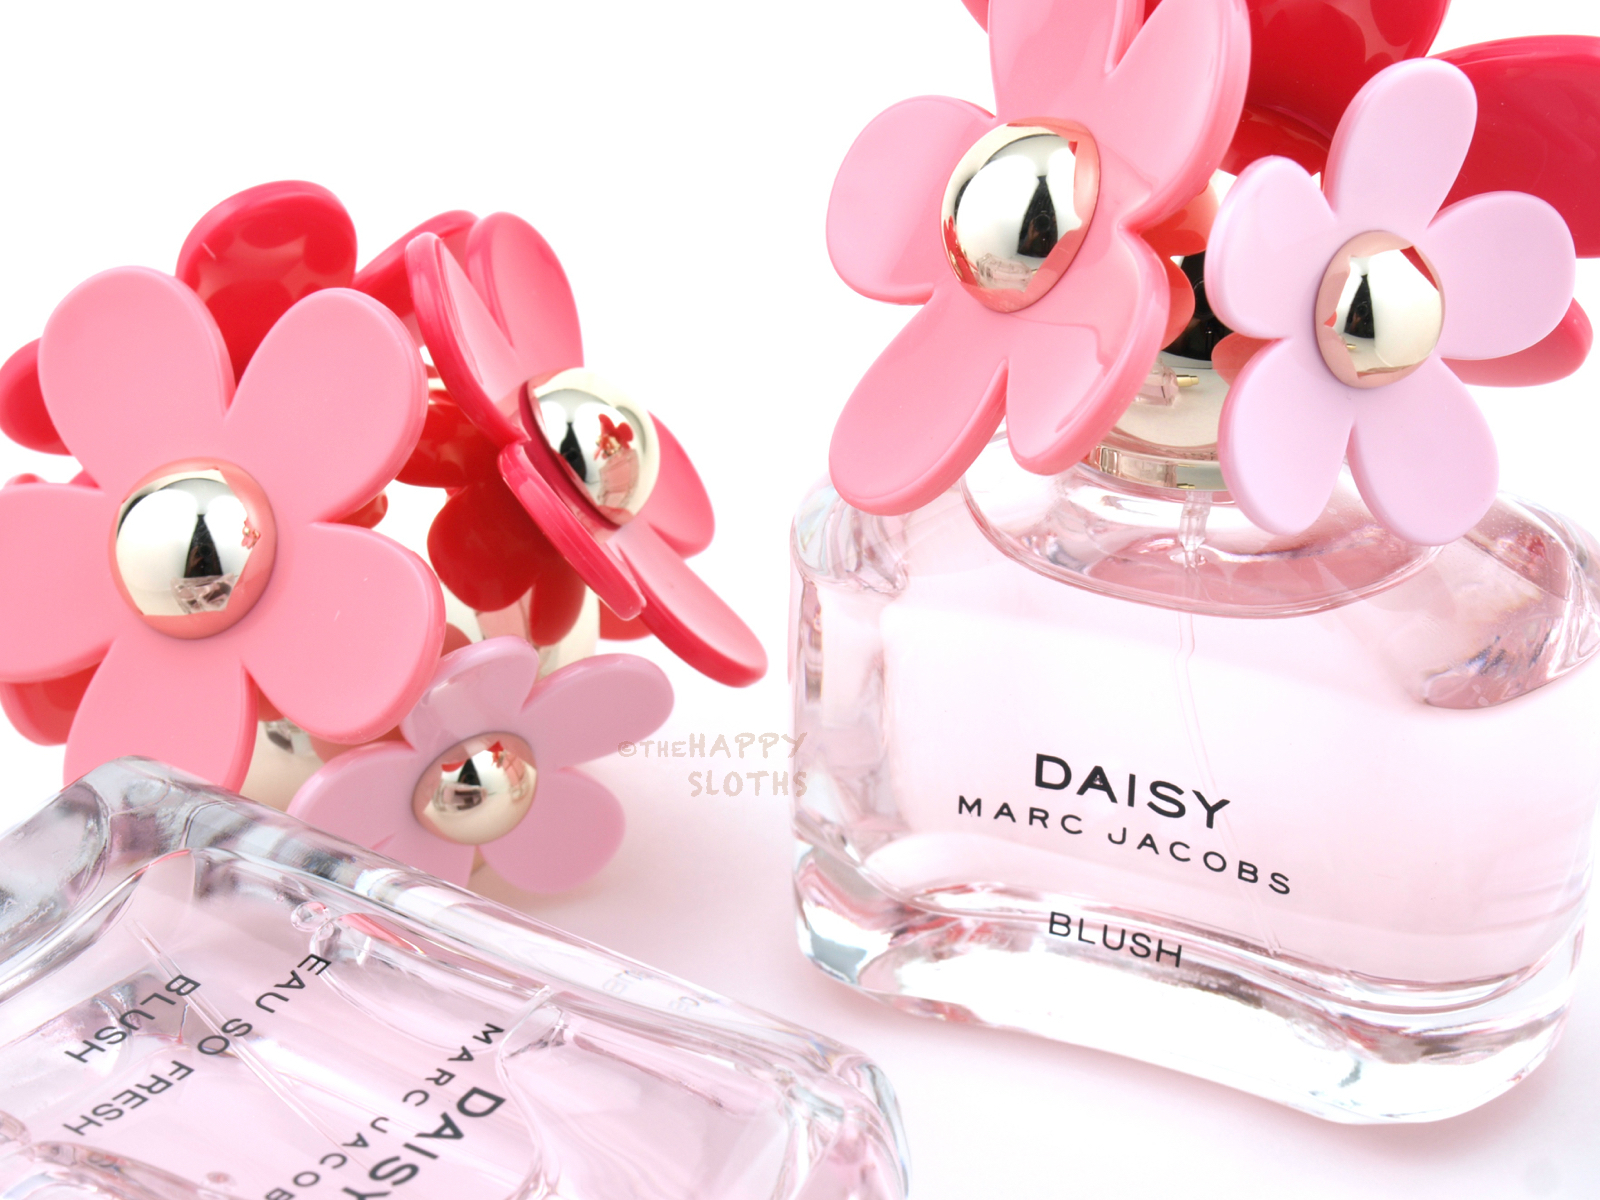 marc jacobs daisy blush perfume review